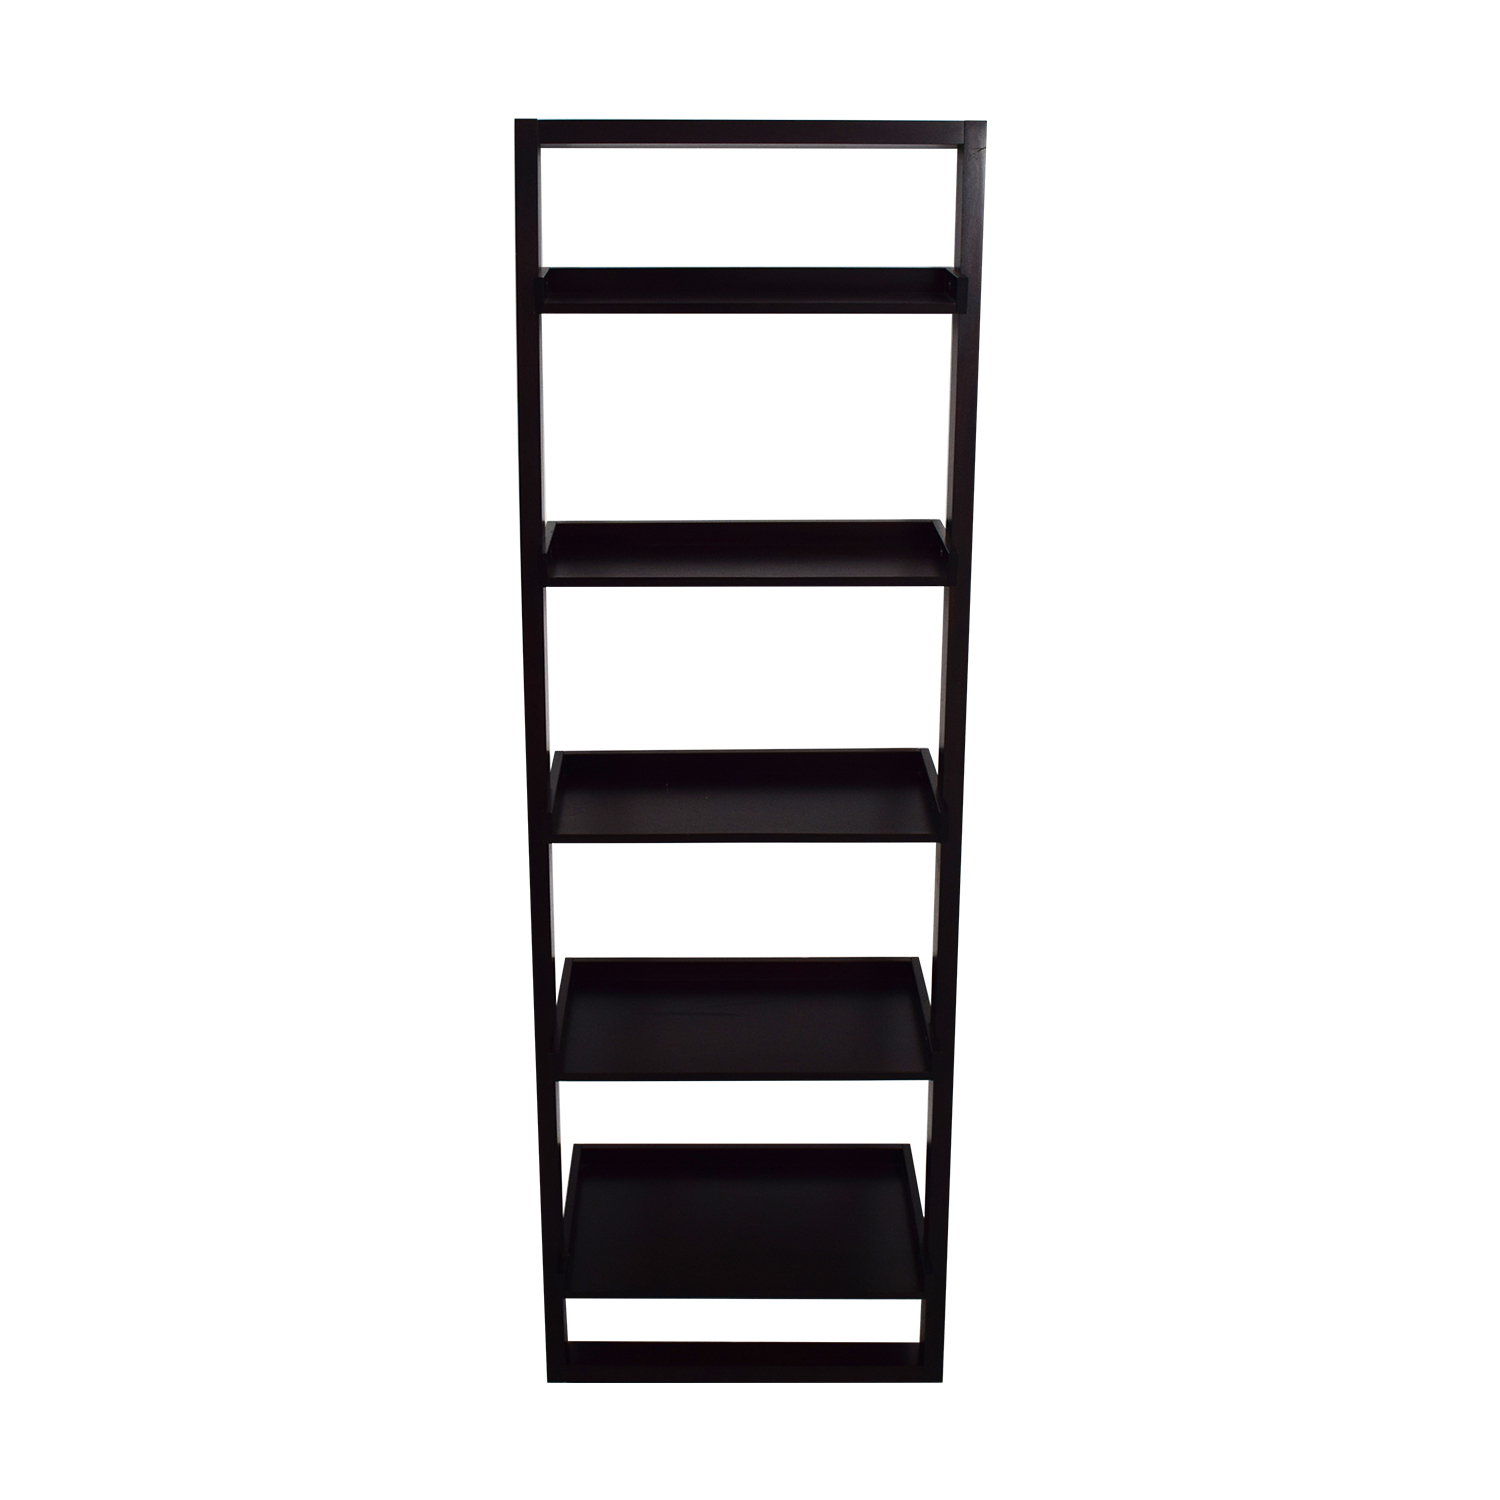 Crate & Barrel Crate & Barrel Leaning Ladder Bookshelf Storage